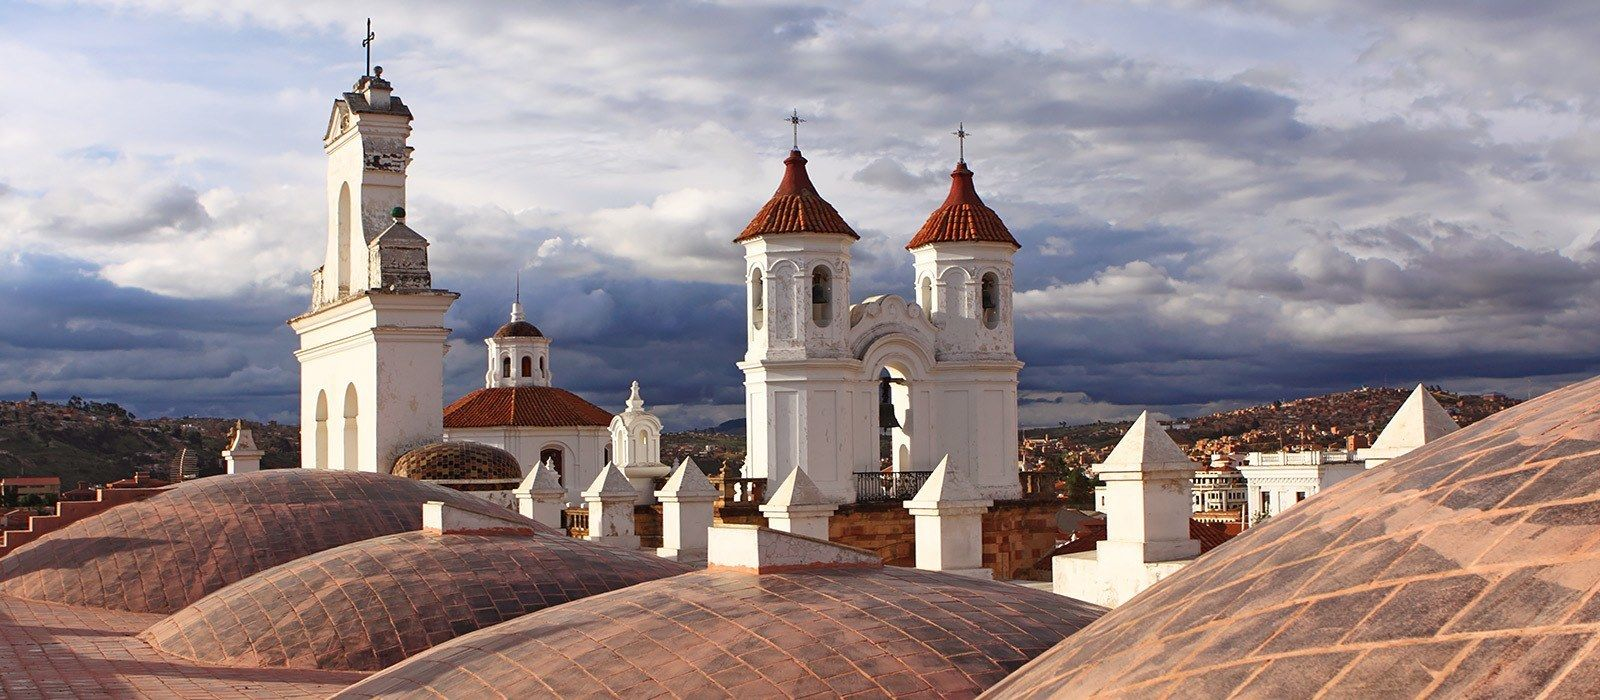 Bolivia: Landscapes & Culture Tour Trip 2